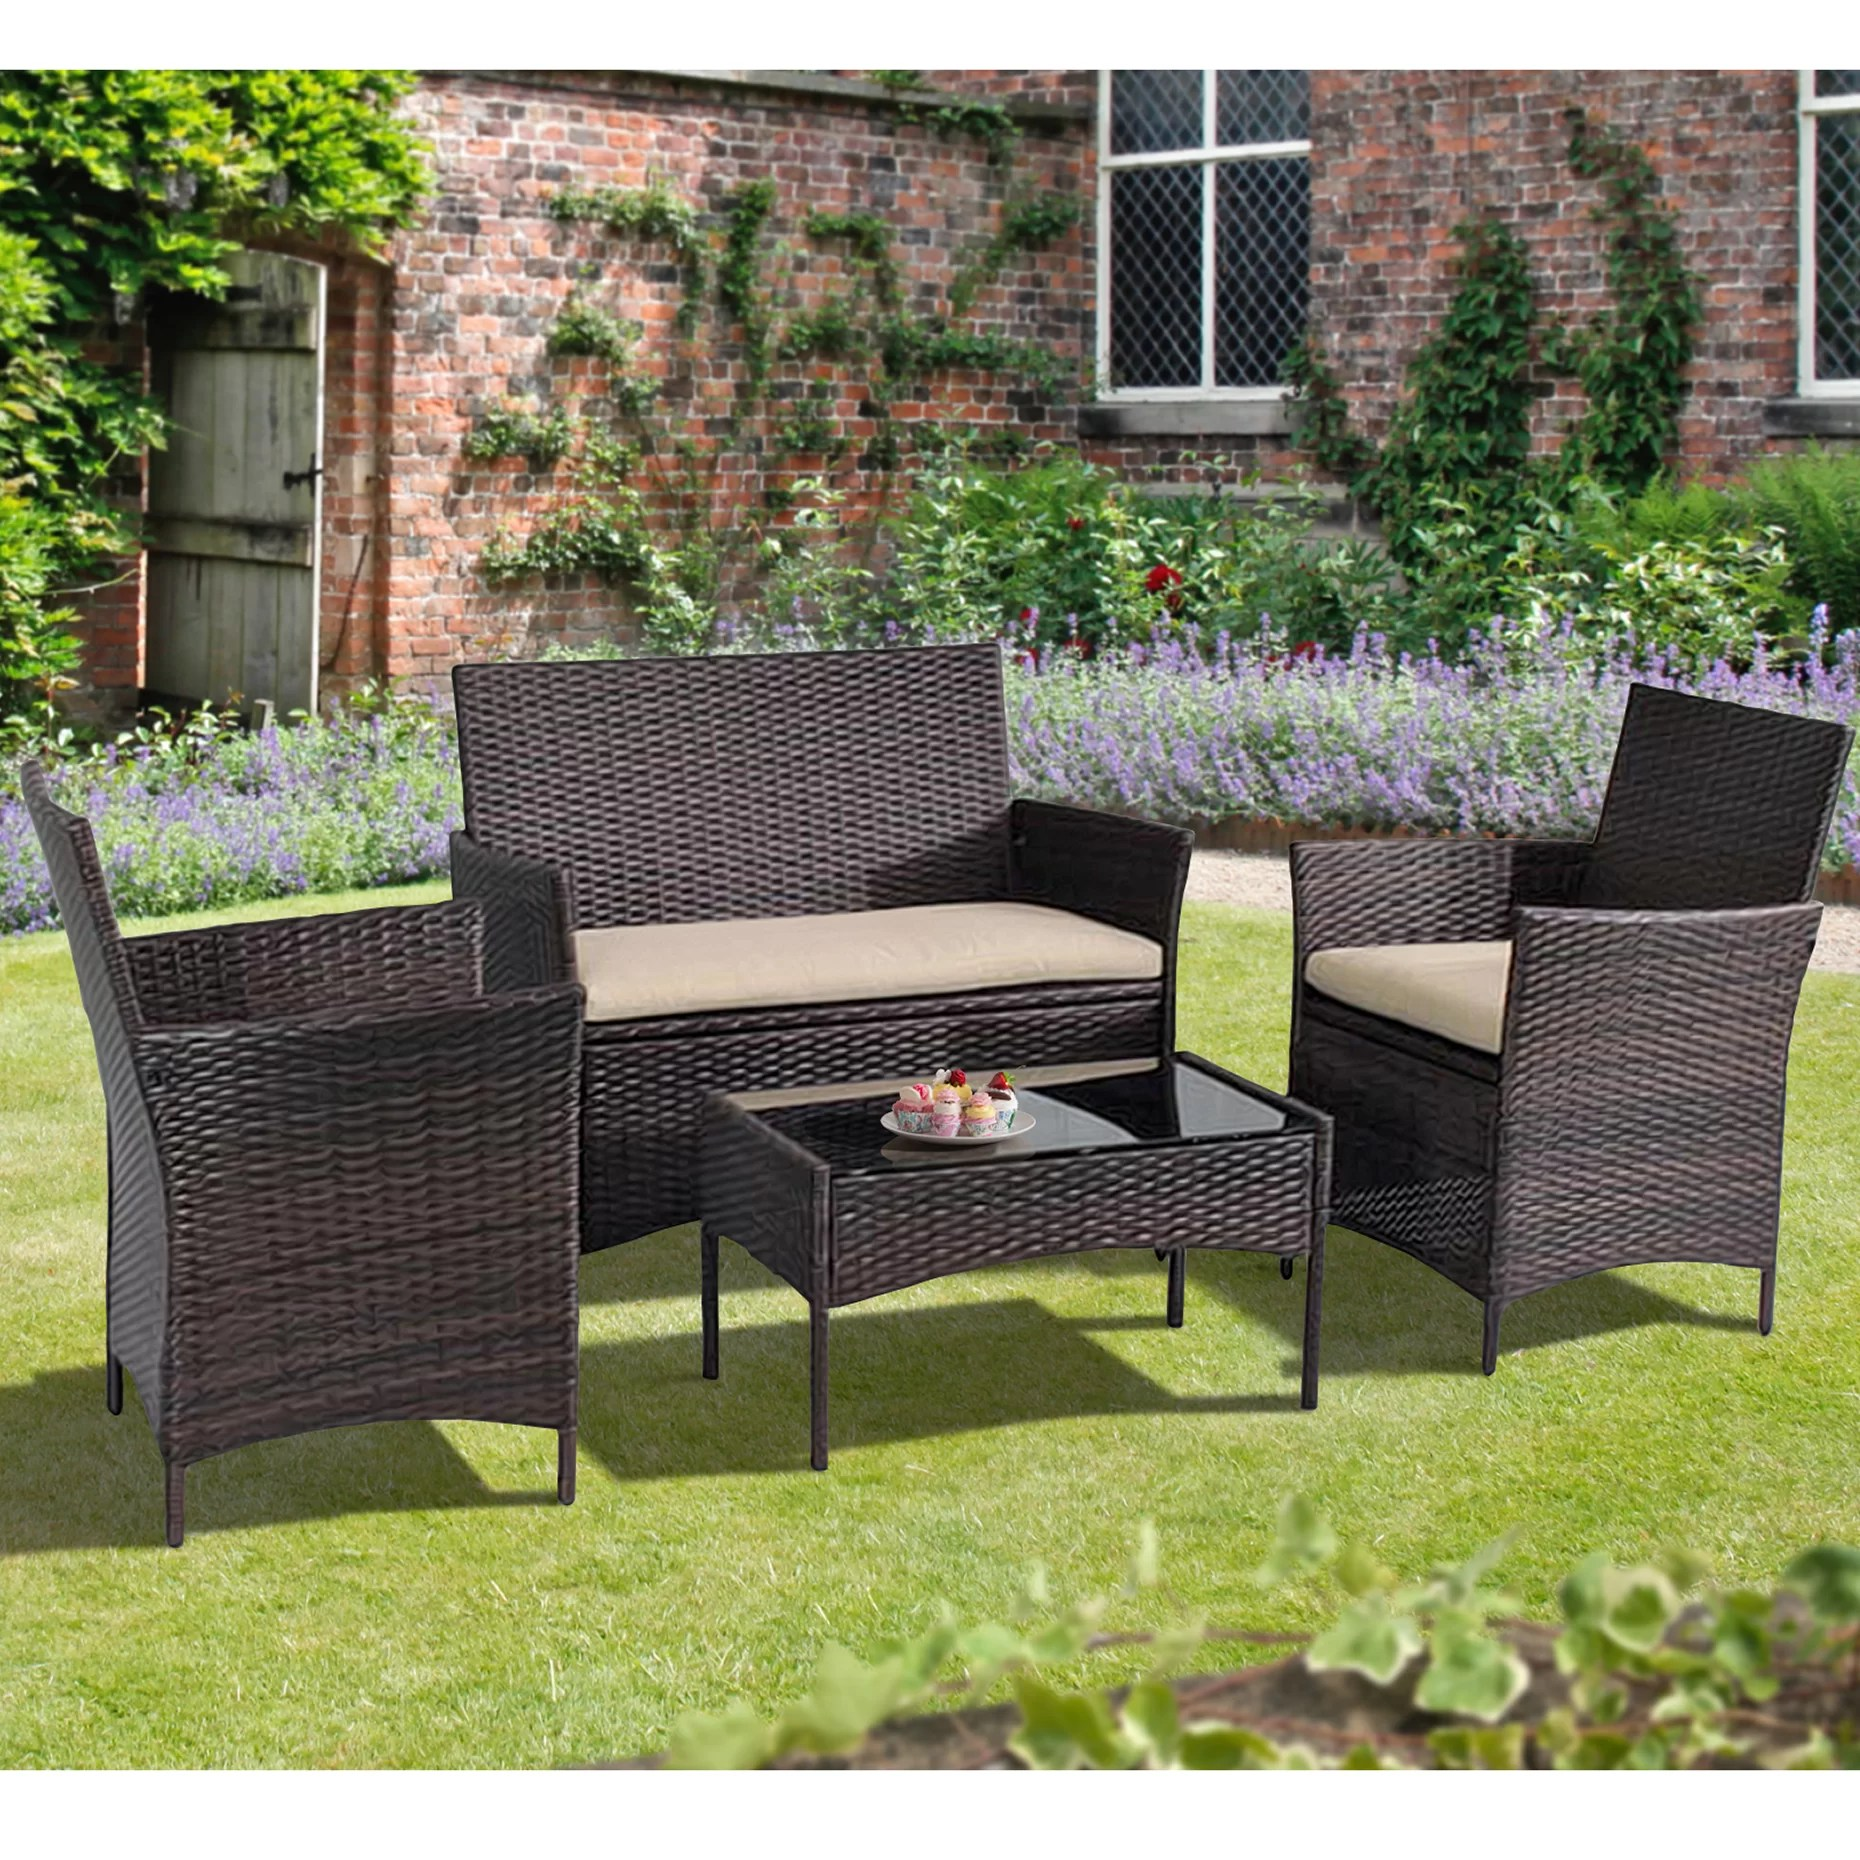 Rattan Sofa Ackman 4 Piece Rattan Sofa Seating Group